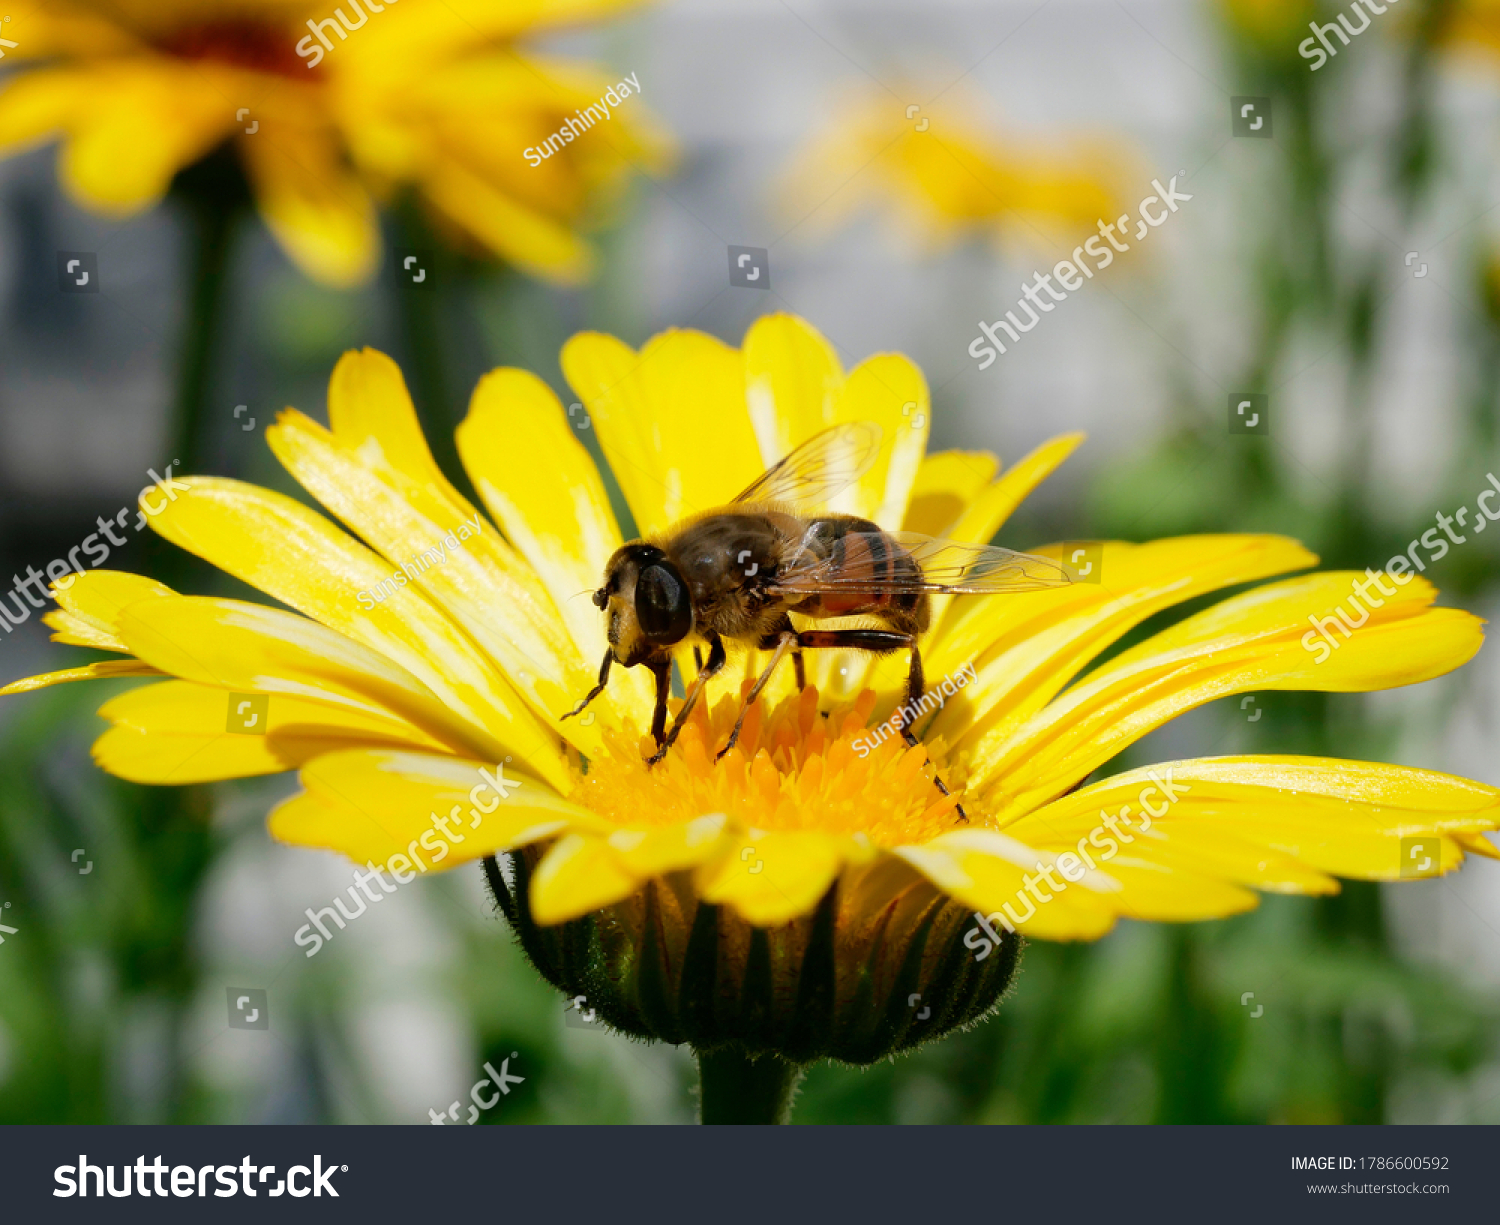 stock-photo-honey-bee-close-up-on-a-mari